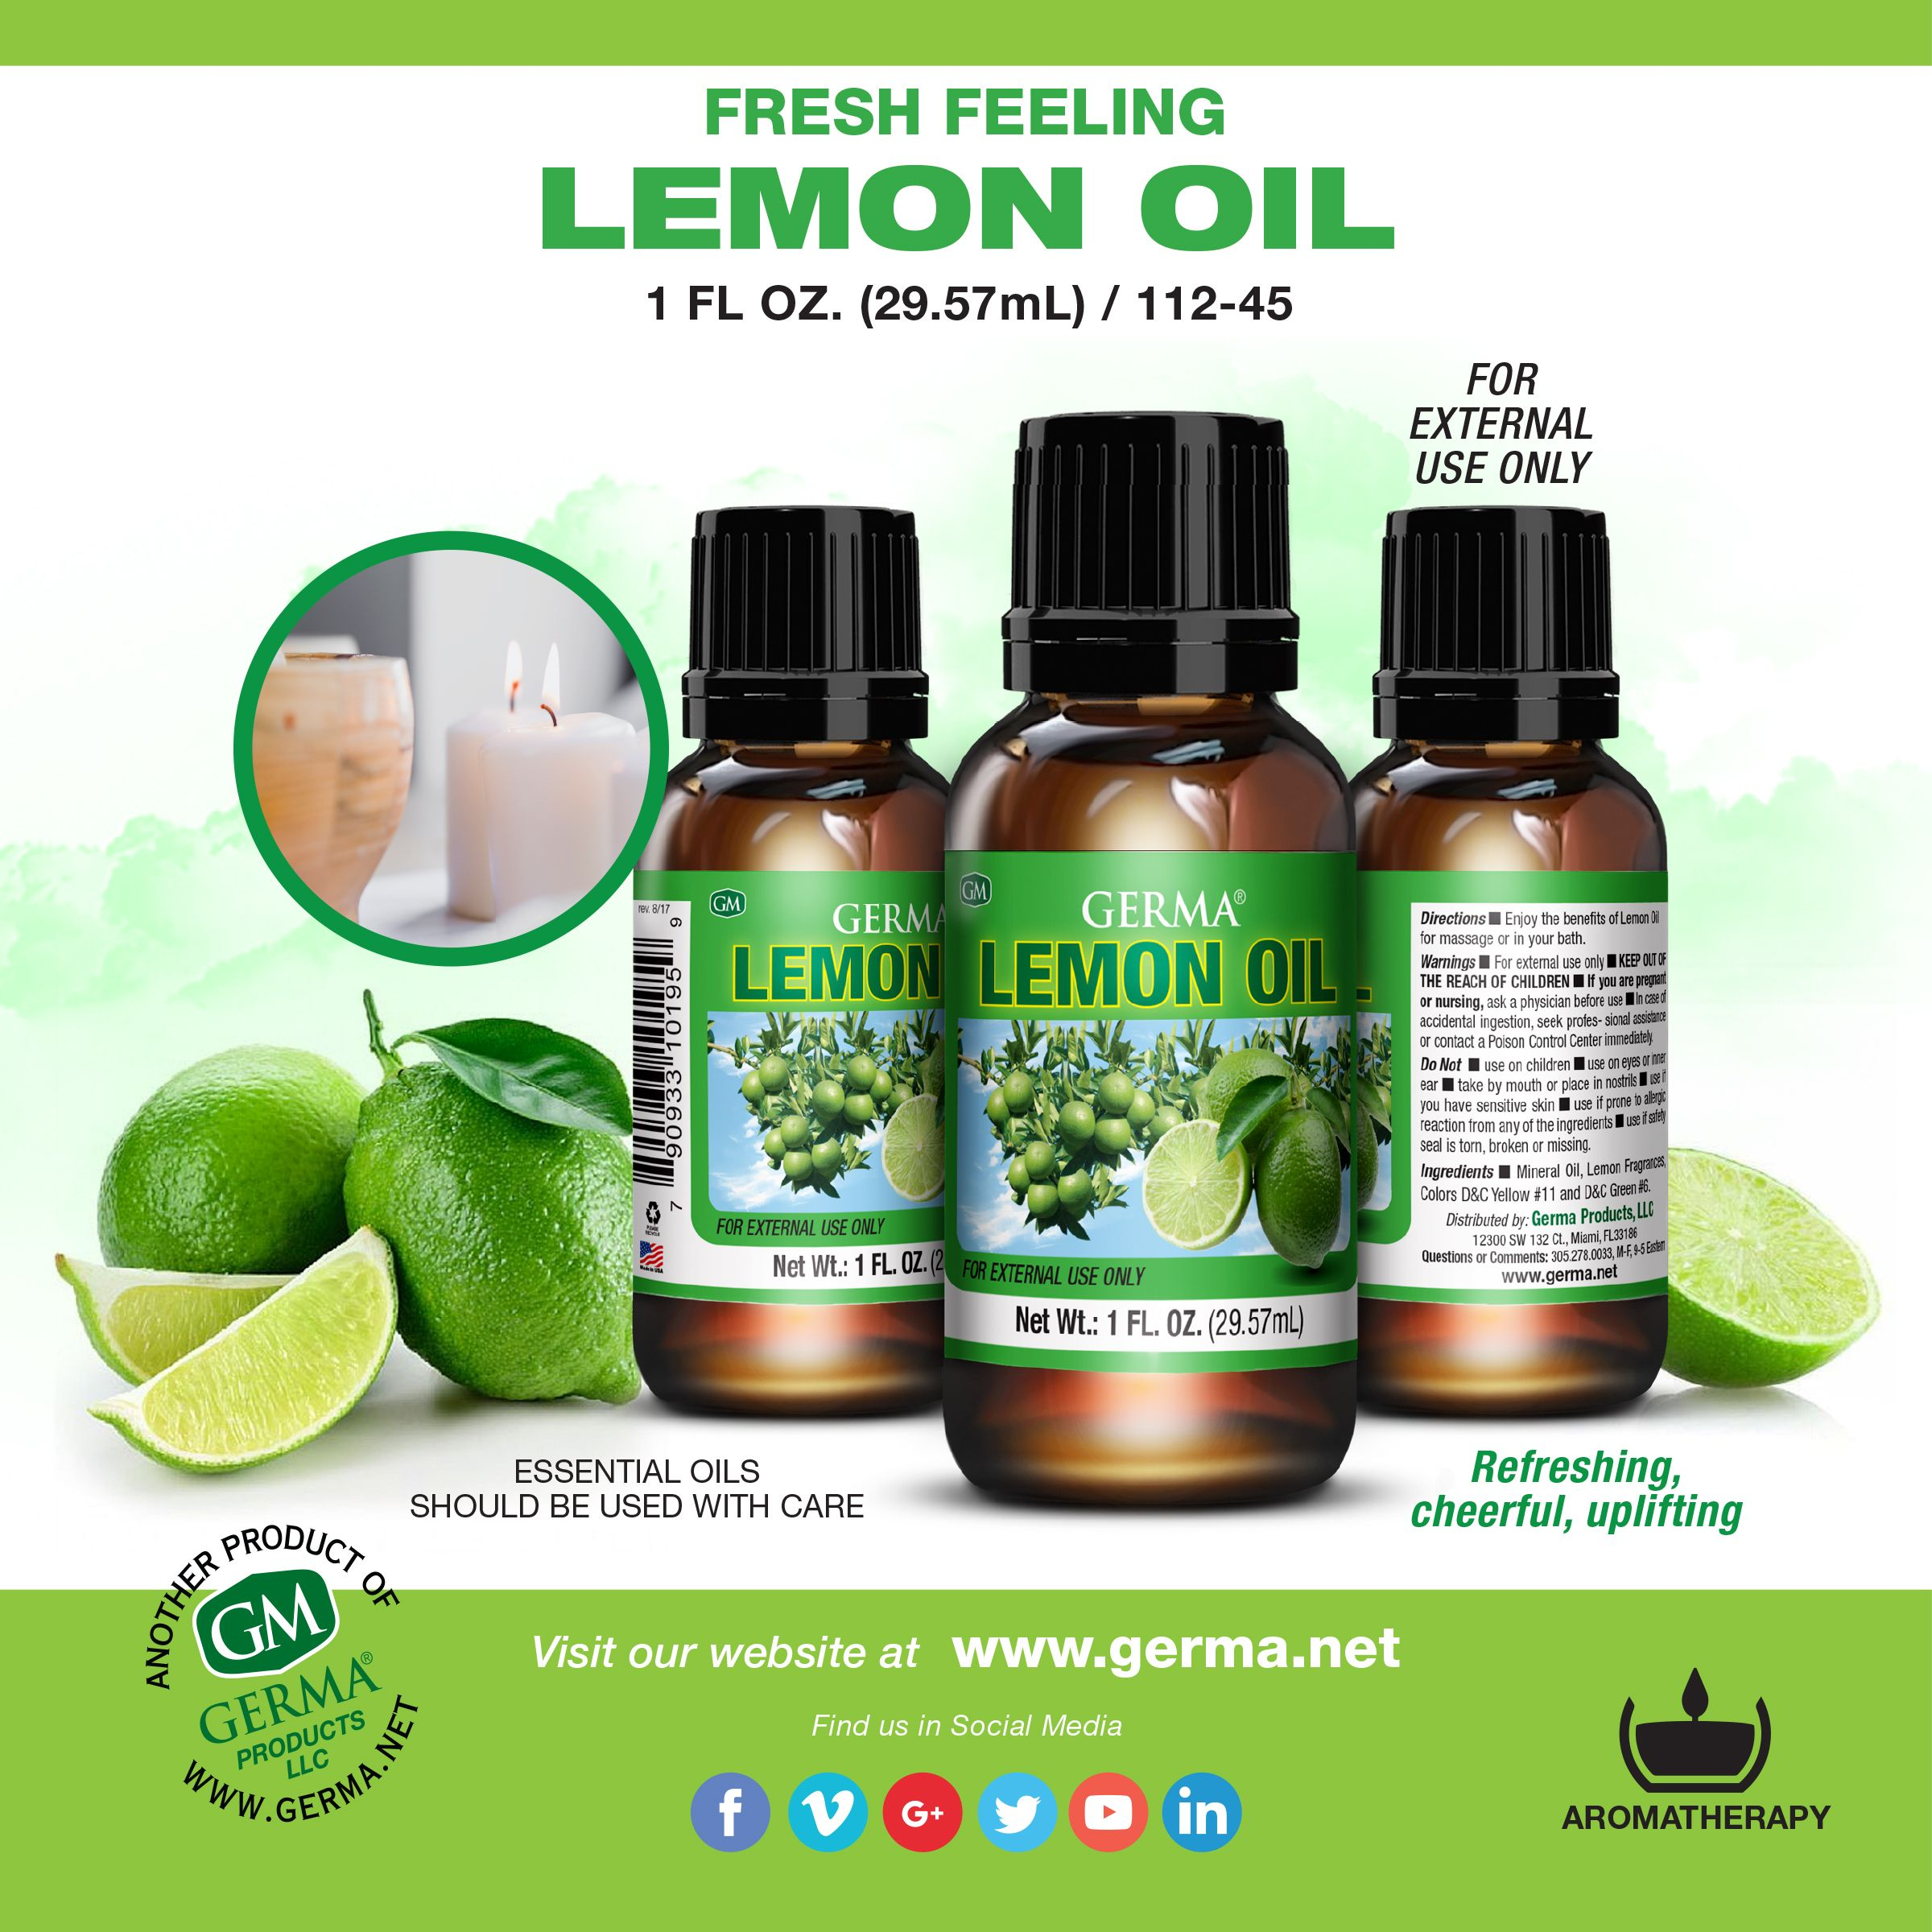 Germa lemon oil fresh therapeutic scent for aromatherapy